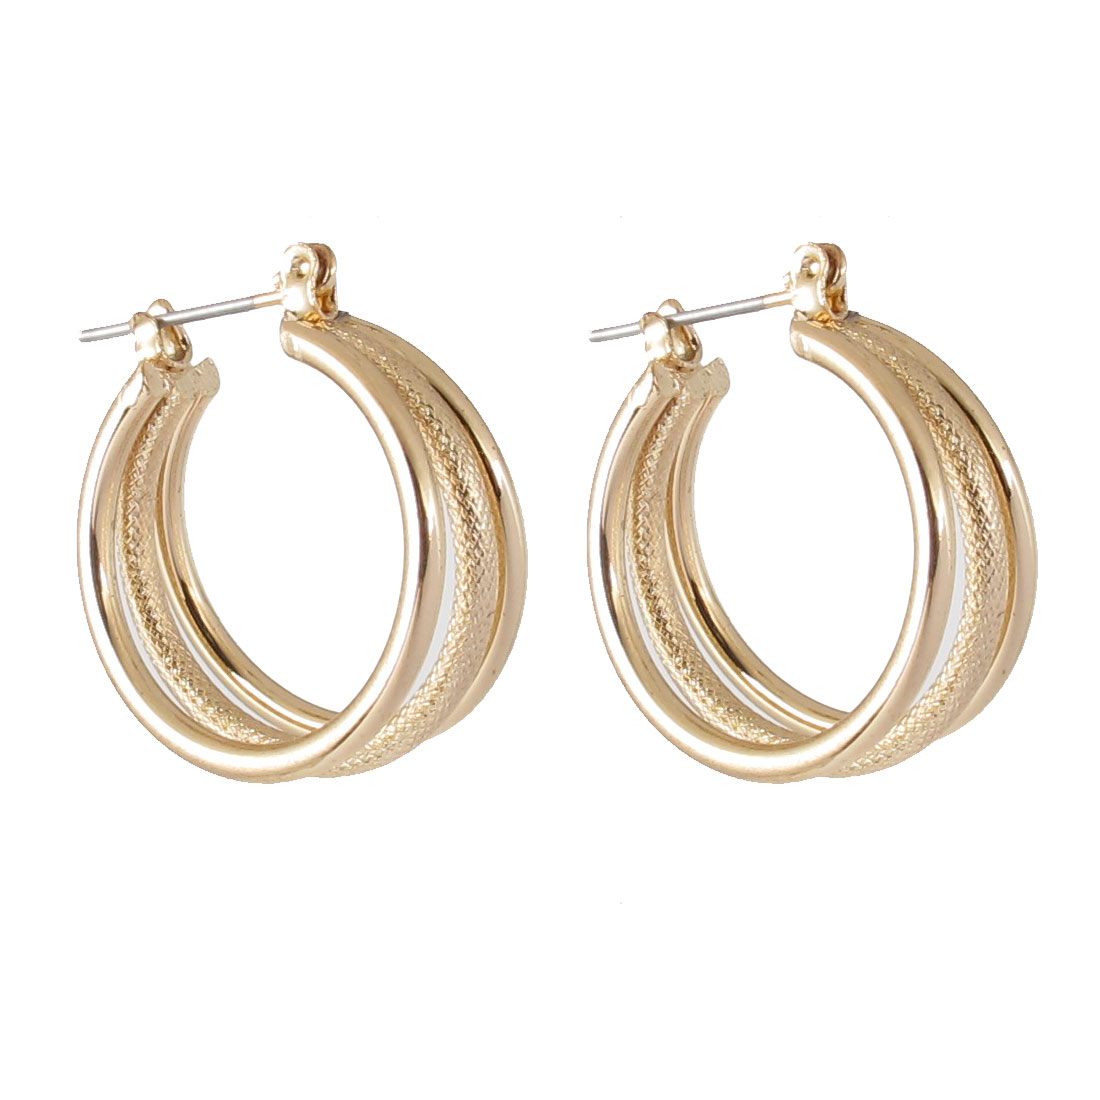 "0.8"" Dia Gold Tone Metal Narrow Circles Hoop Pierced Earrings Pair for Lady Women"